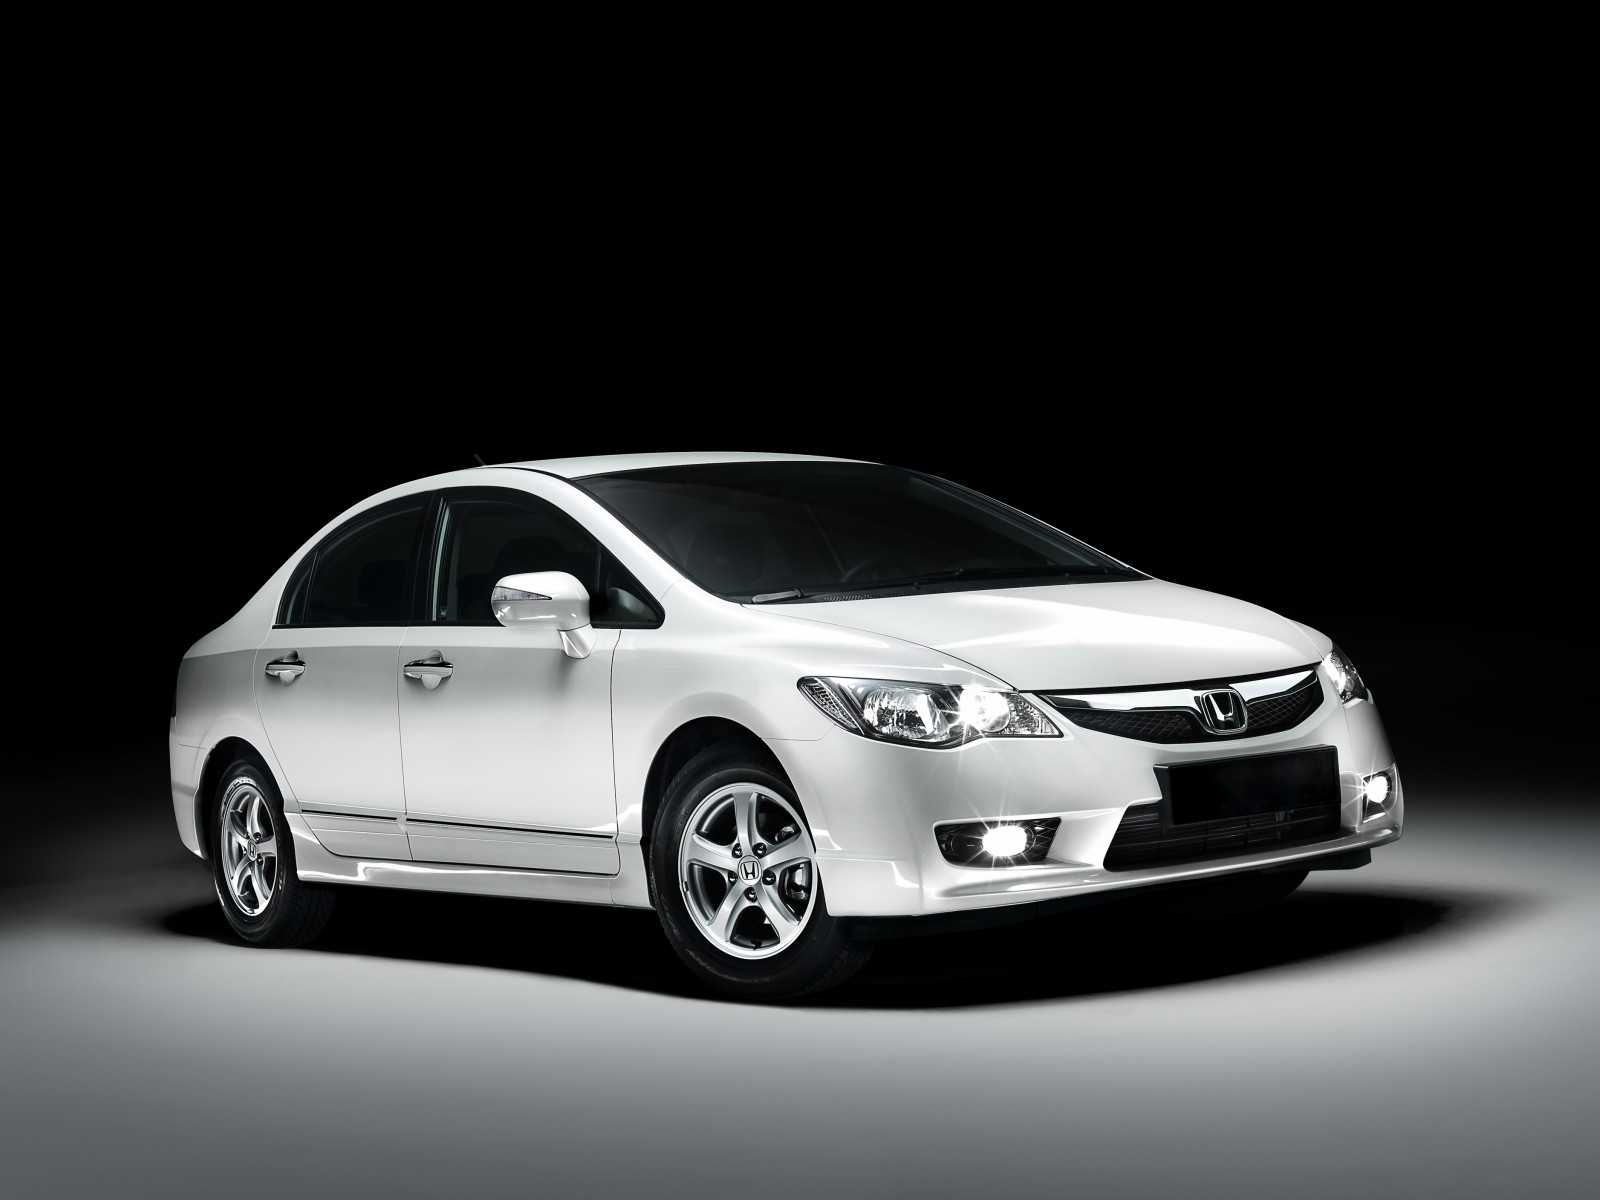 2009 honda civic hybrid wallpapers pictures specifications. Black Bedroom Furniture Sets. Home Design Ideas